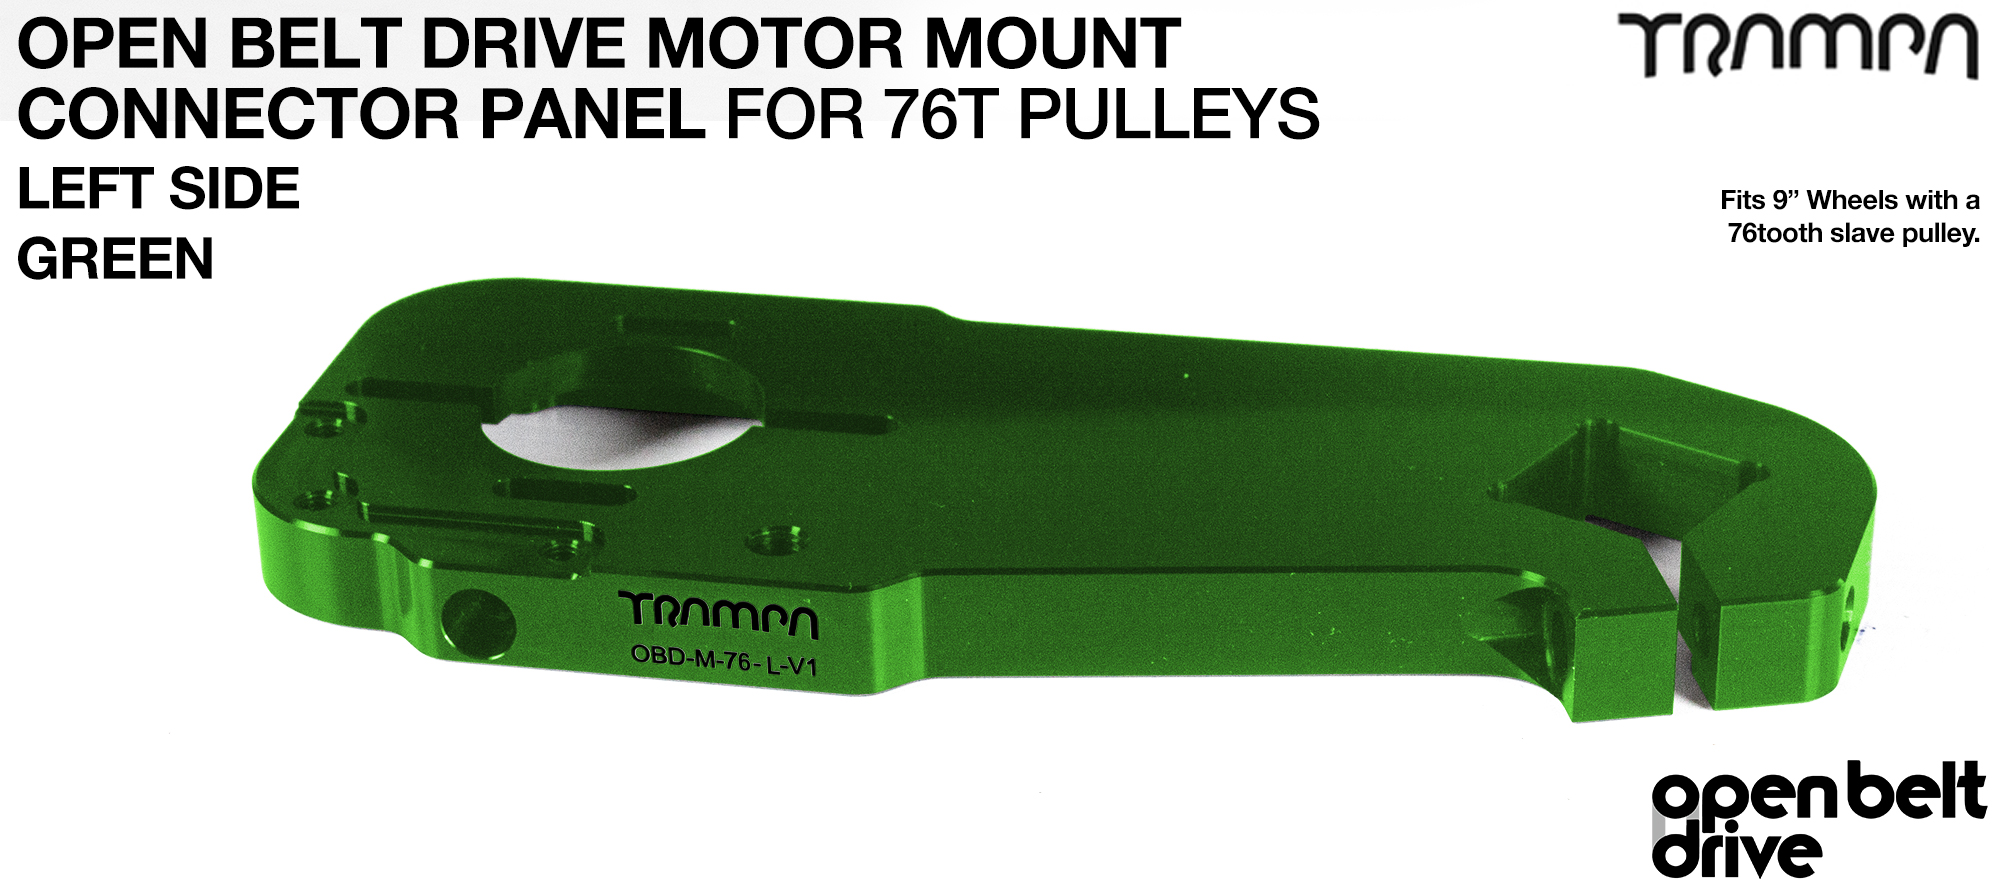 OBD Motor Mount Connector Panel for 76 tooth pulleys - REGULAR - GREEN